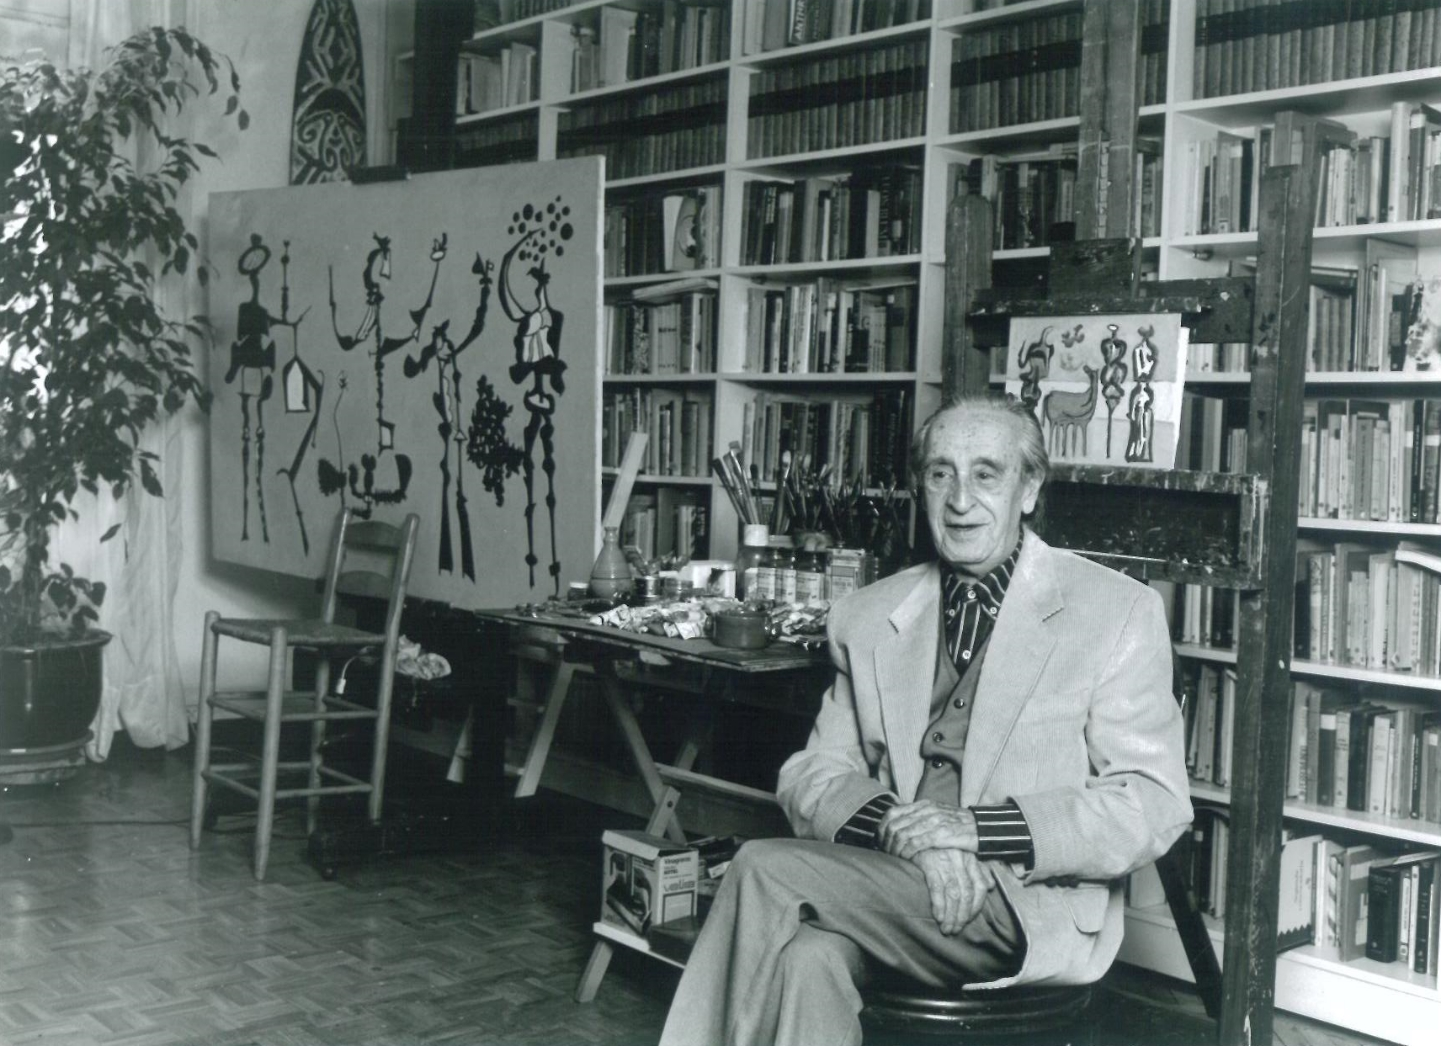 Granell in his studio in Madrid, Spain